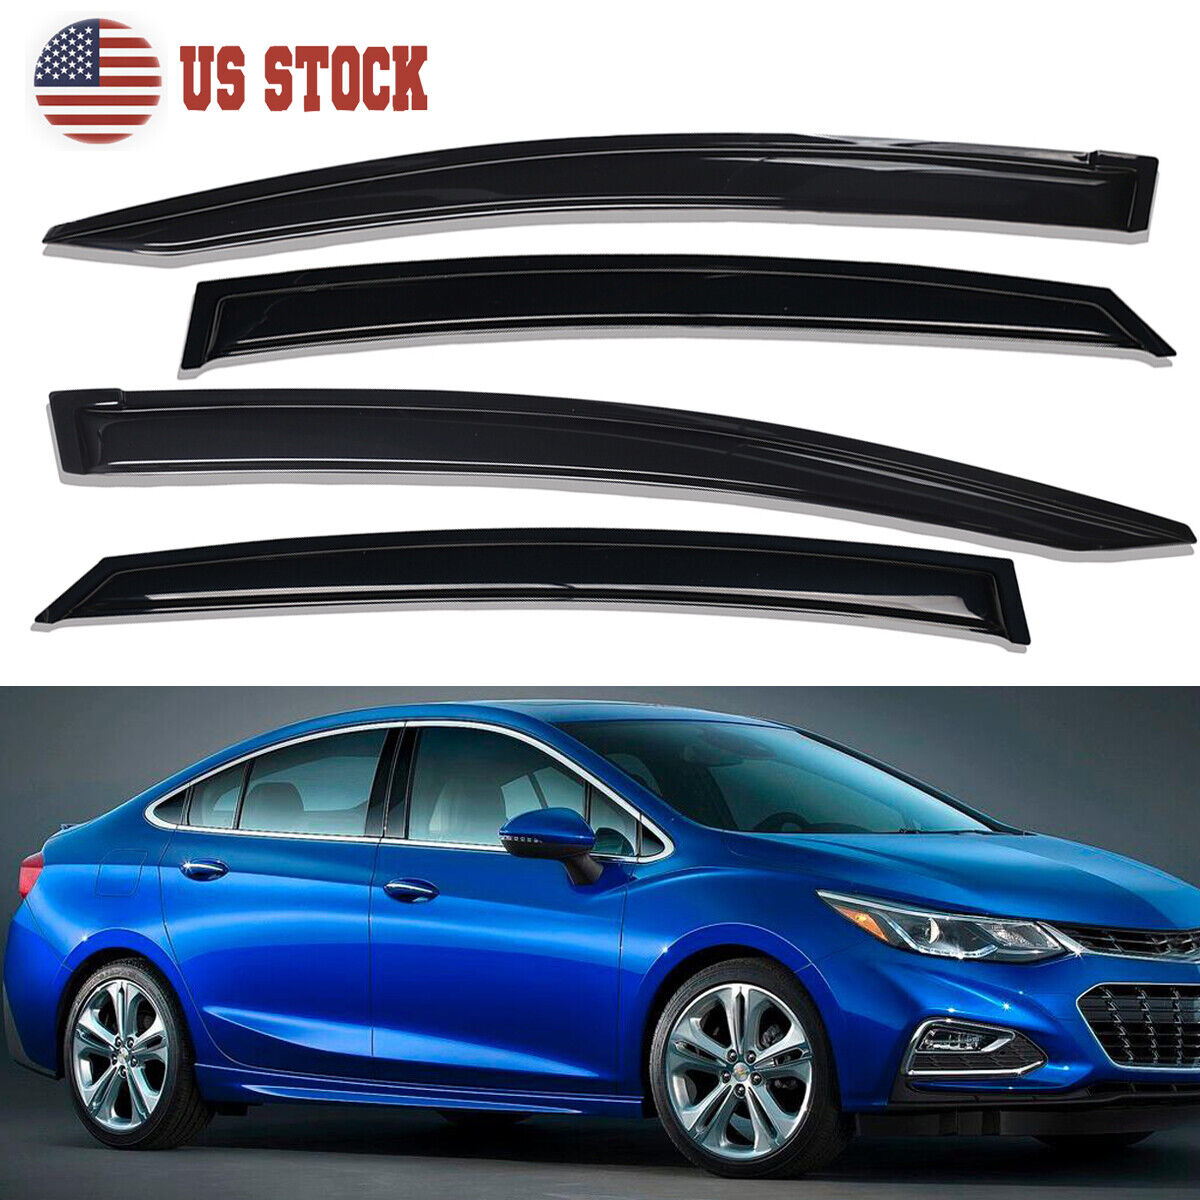 Lightronic WV94712 Tape-on Window Visors Rain Guards Smoke Tint 4PCS Set Fit for 2016-2019 Chevy Cruze Excludes Classic Model